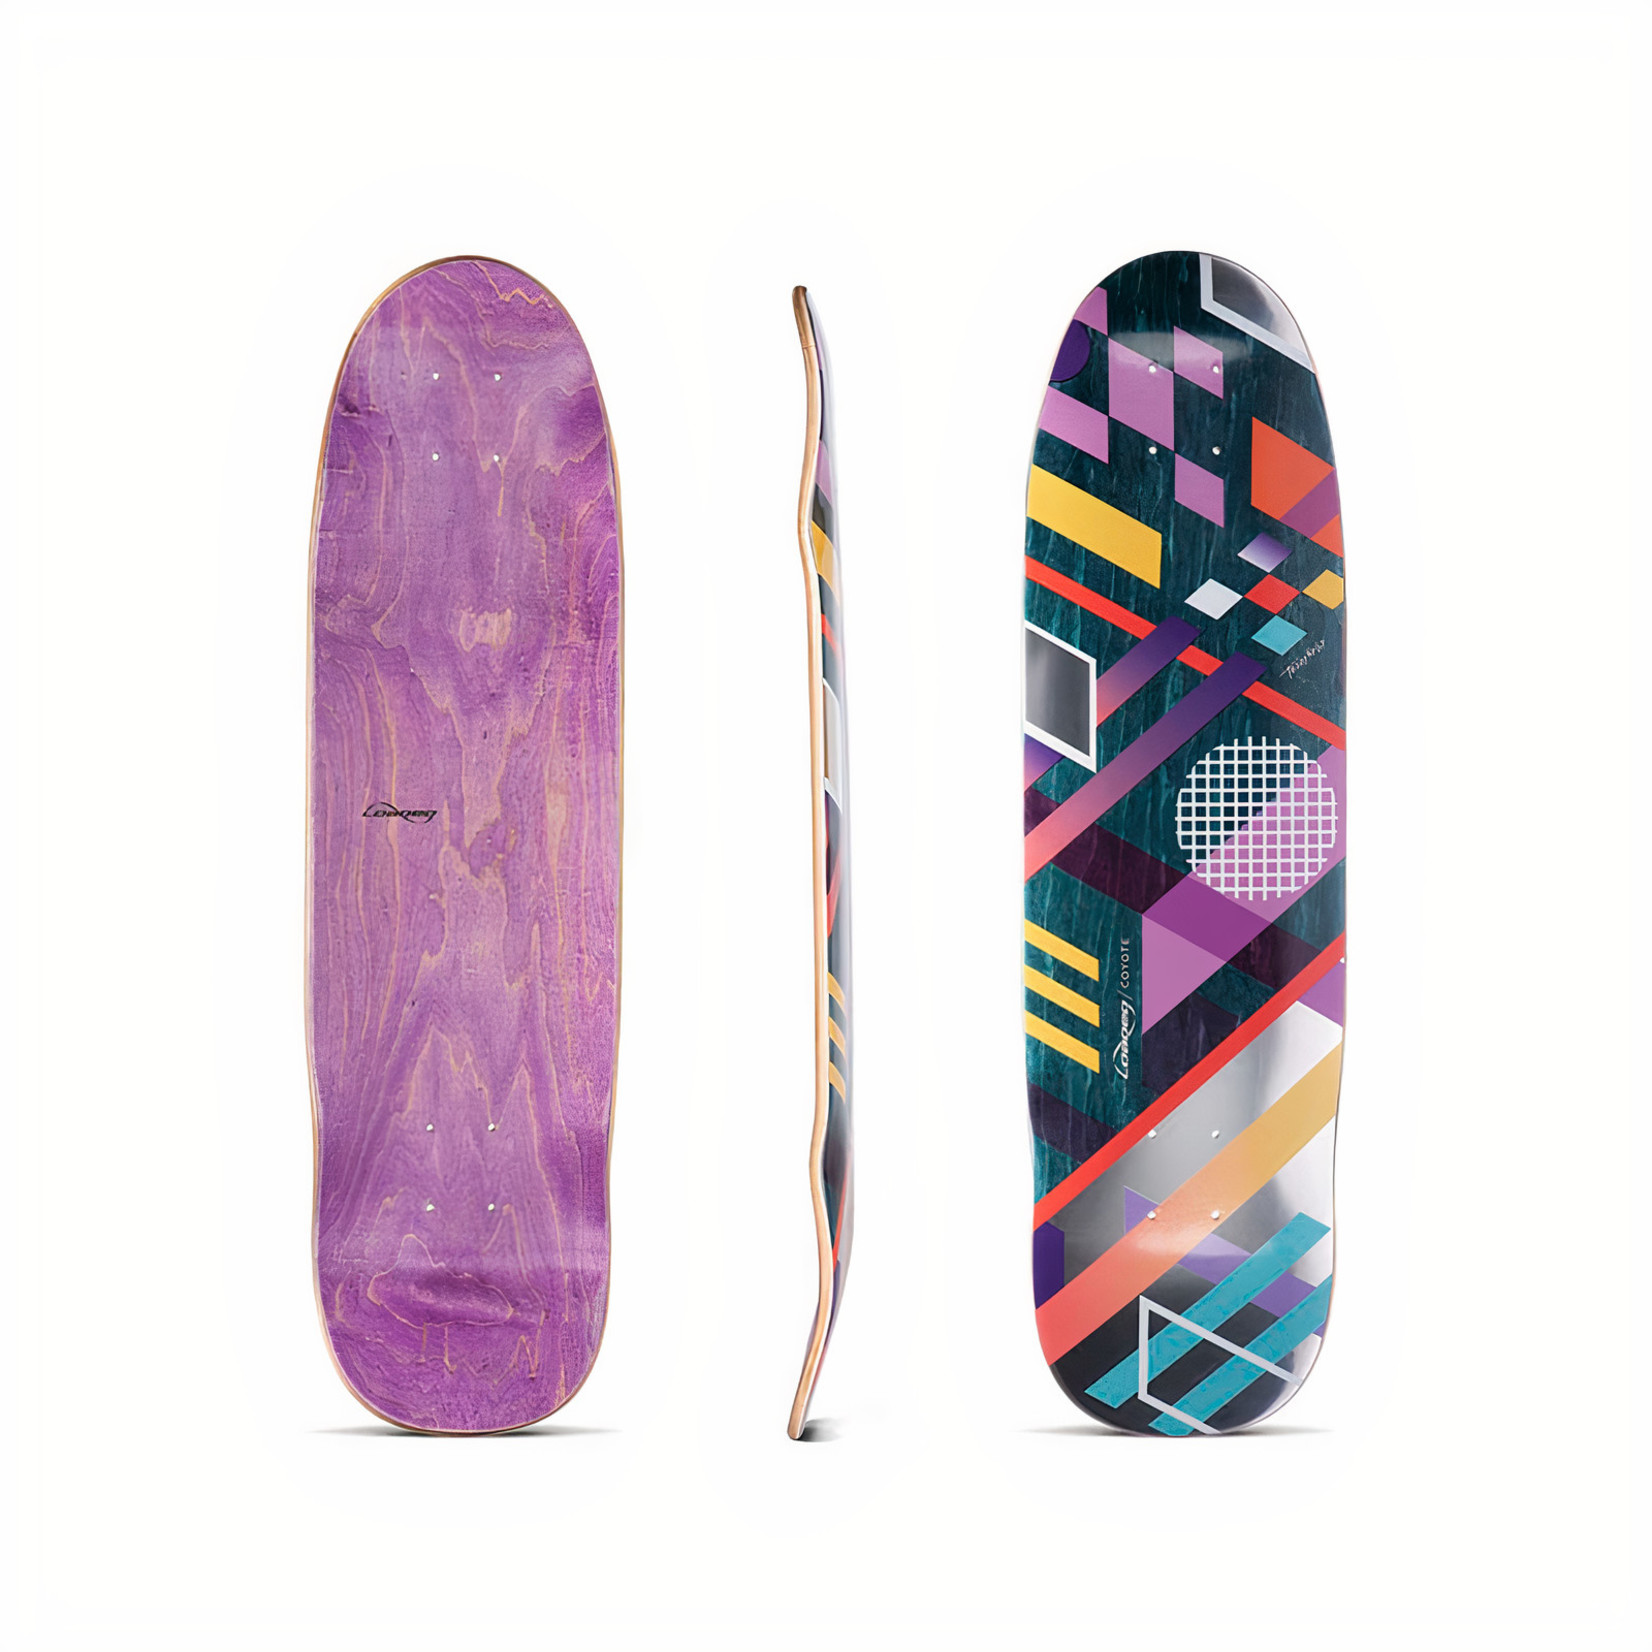 """Loaded Loaded - Coyote Deck 30.75 x 8.375"""""""